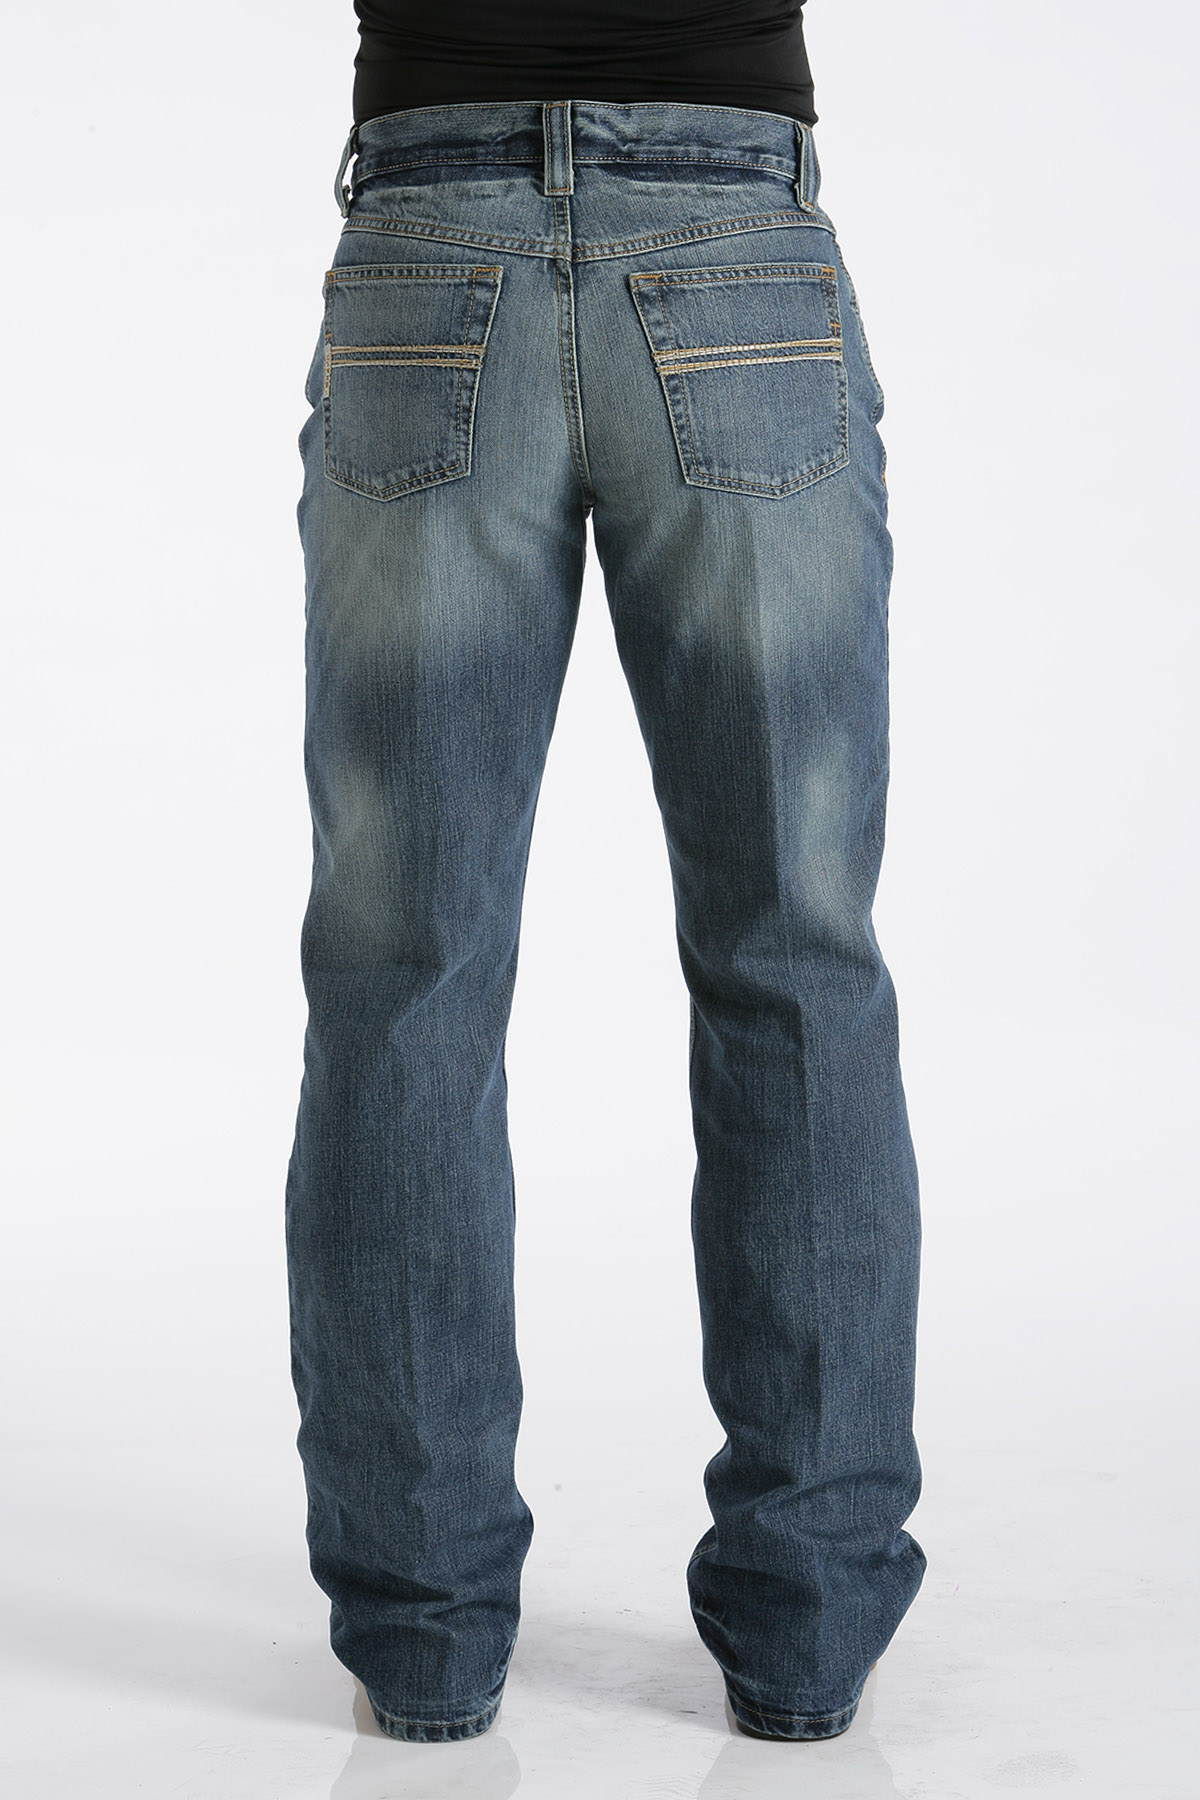 CINCH Men's Relaxed Fit Carter Jean - Medium Stonewash